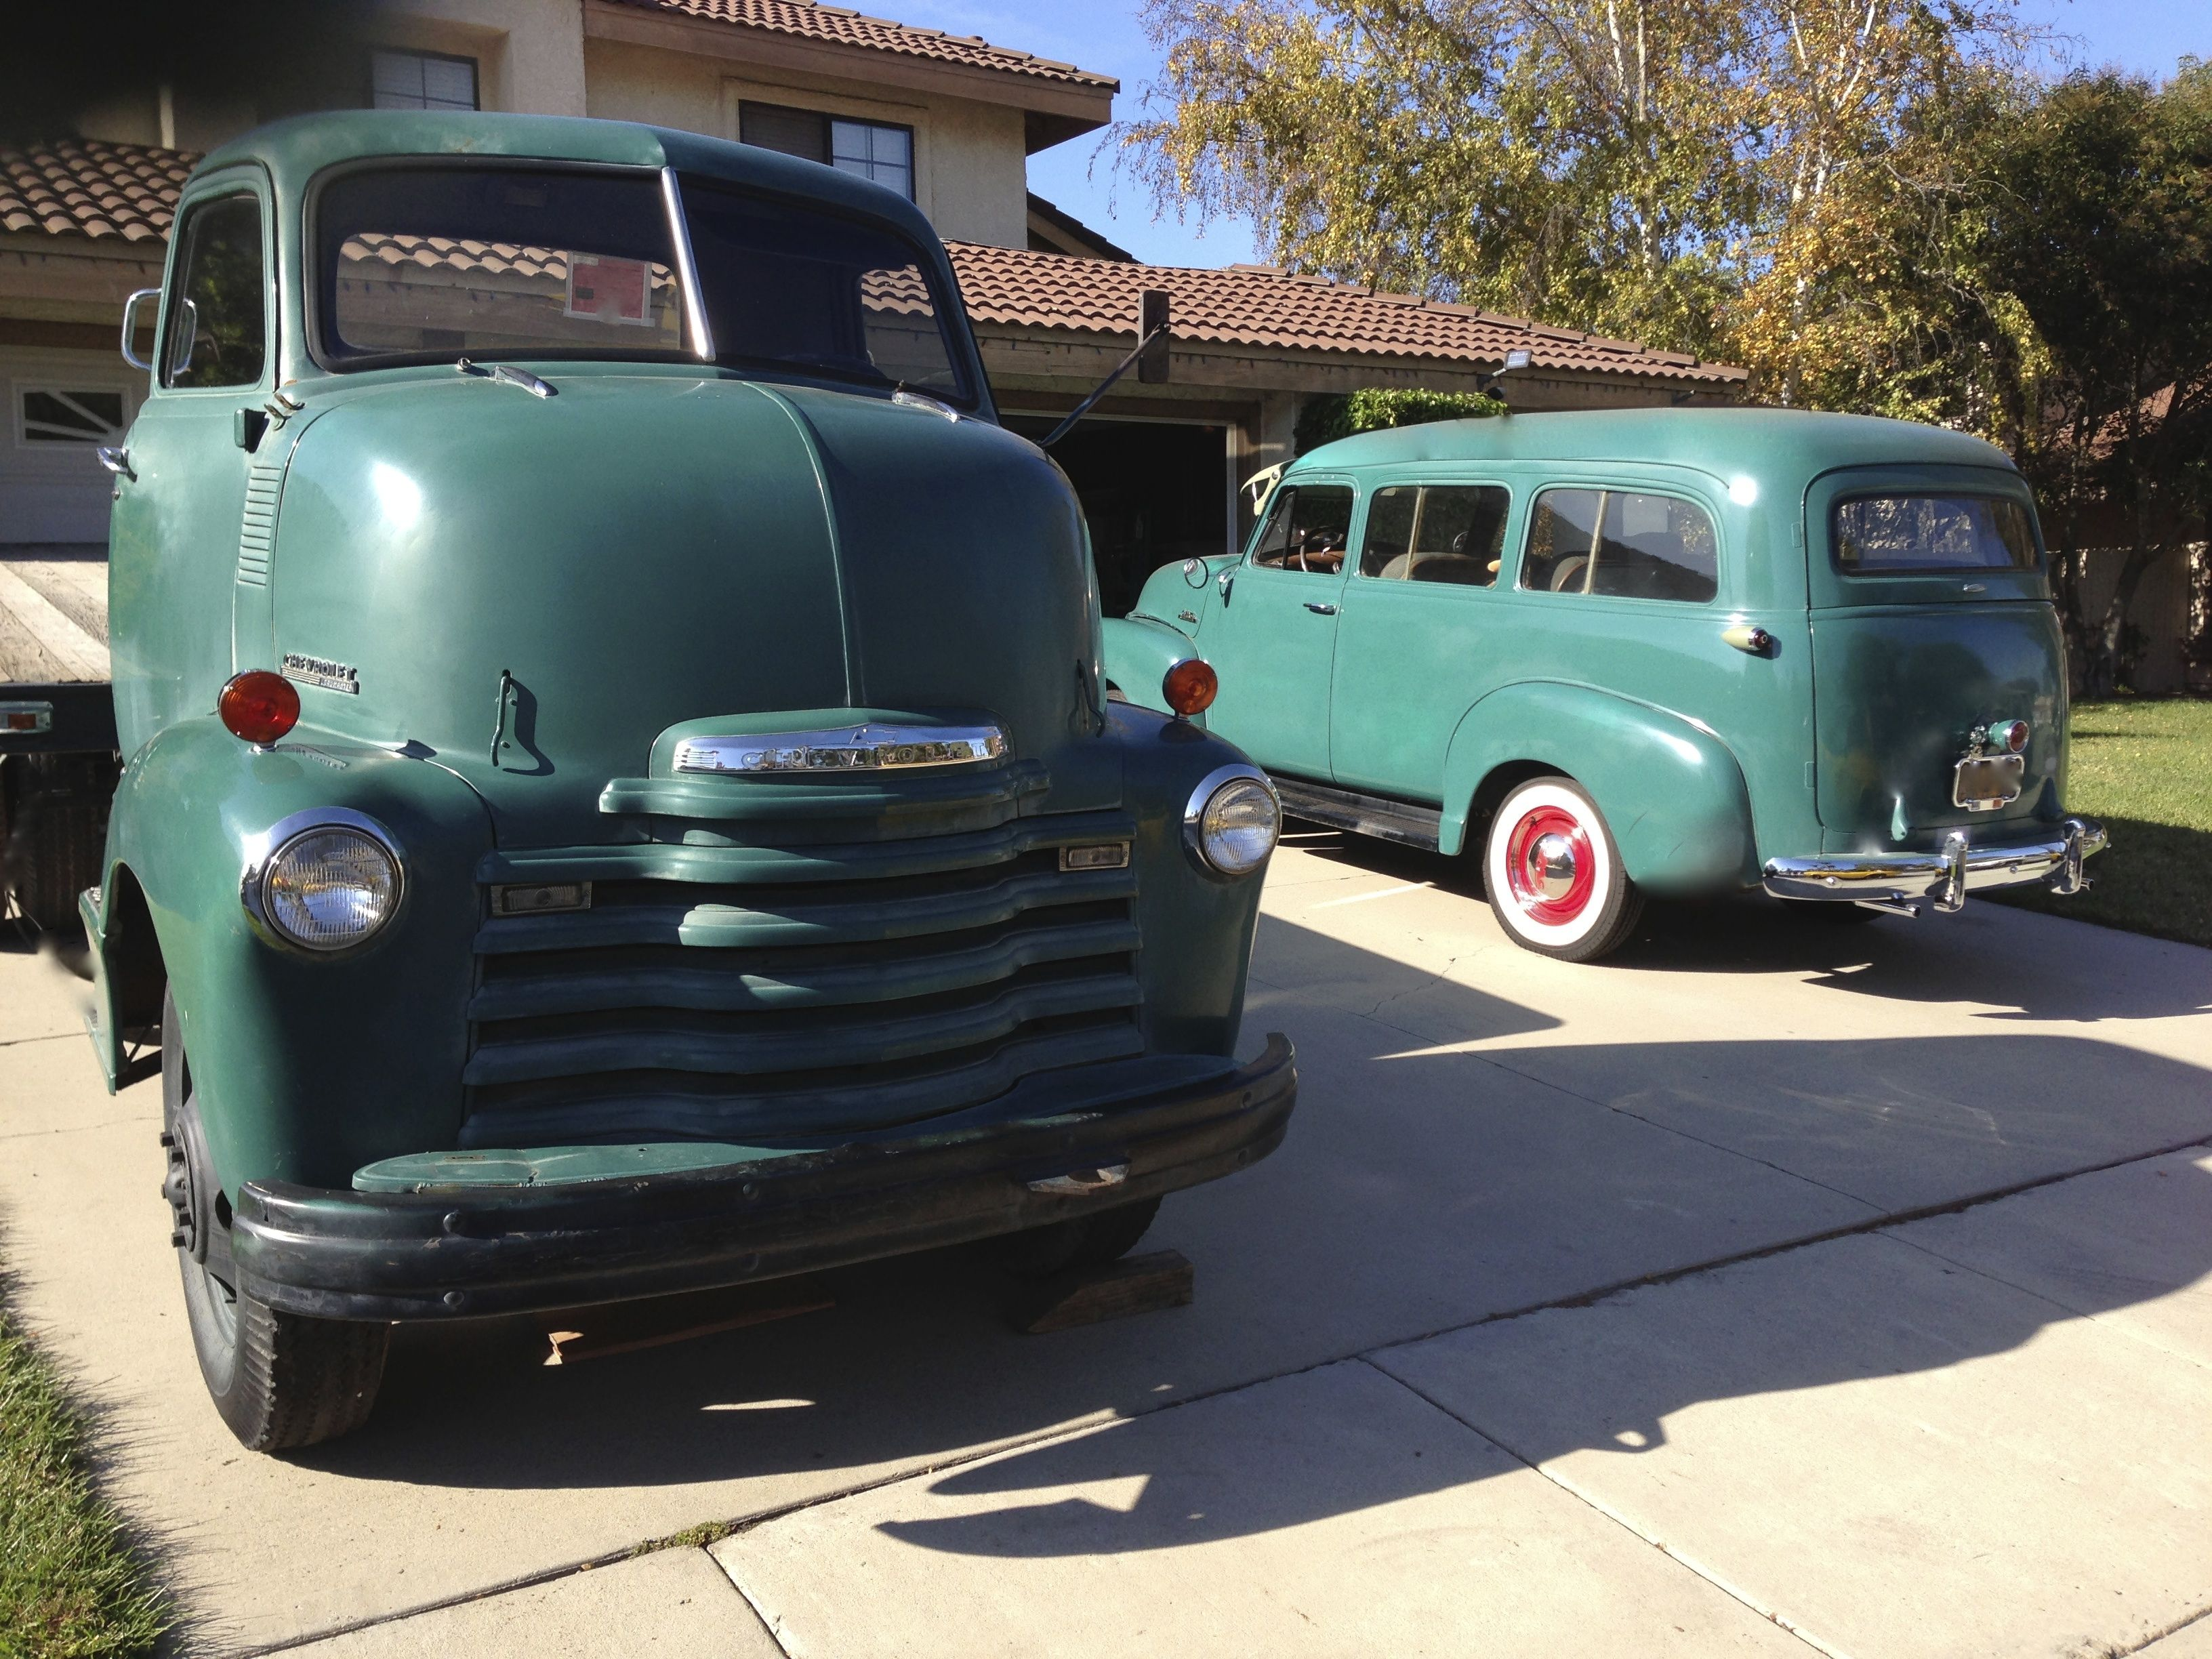 1948 chevy coe and 1951 gmc suburban nice hoouse sealingsandexpungements com 888